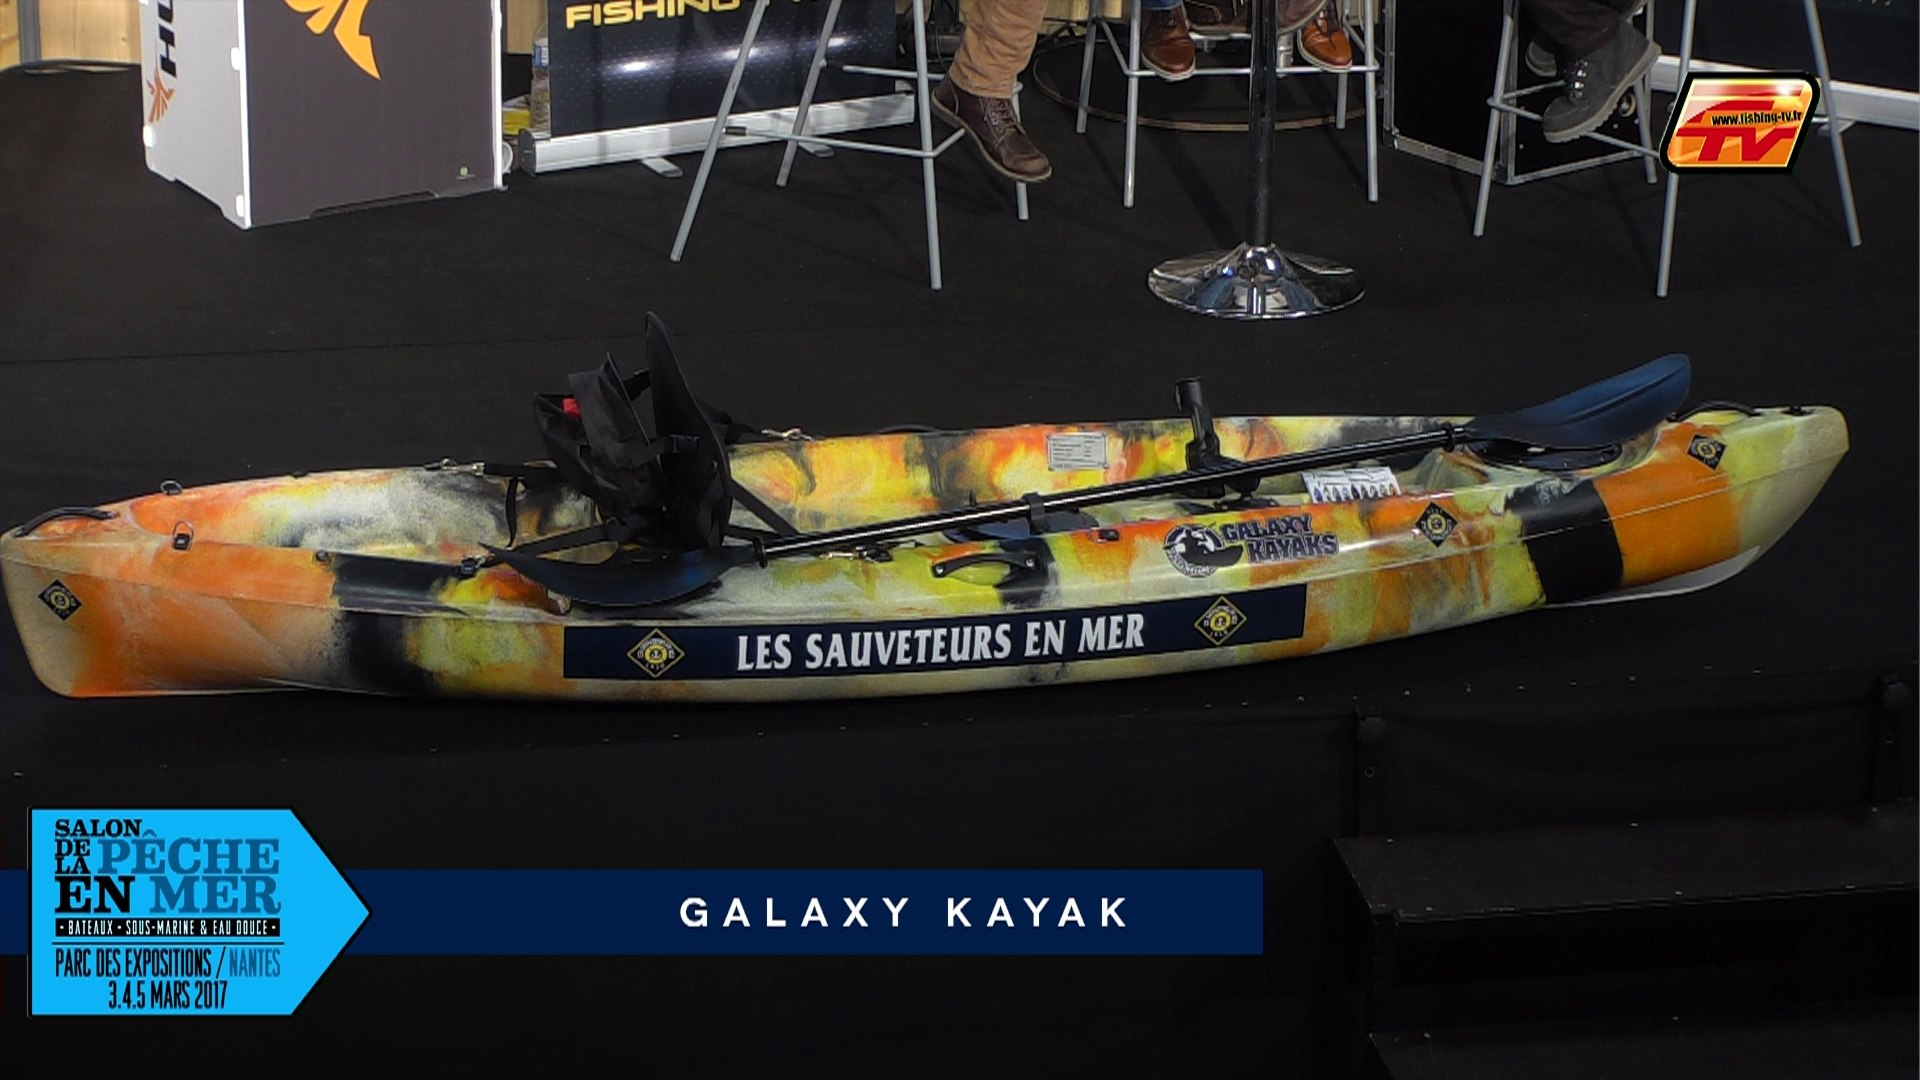 Salon Peche Nantes Salon Peche En Mer 2017 Galaxy Kayak